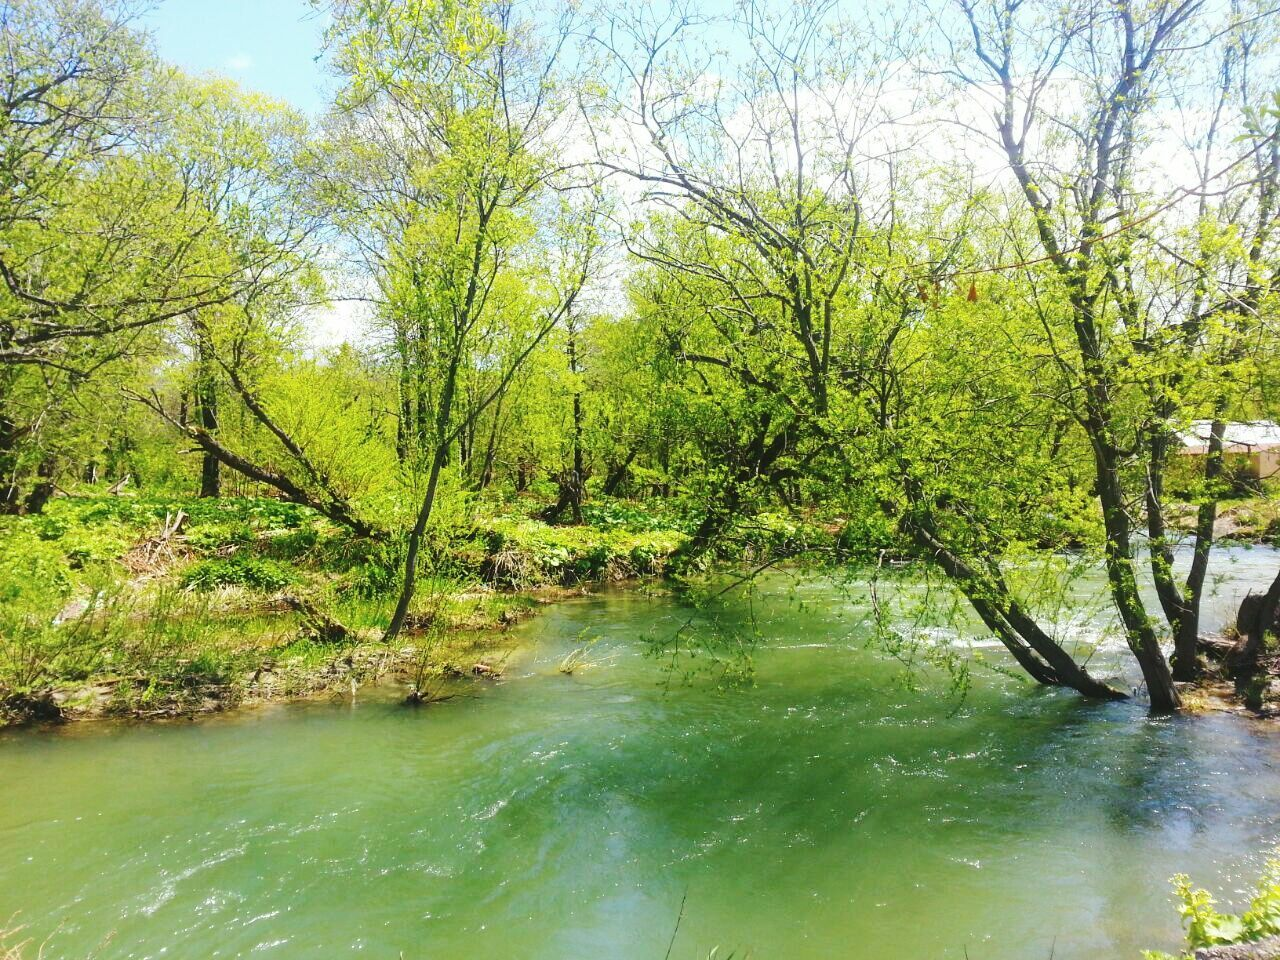 water, nature, tree, river, tranquility, beauty in nature, forest, scenics, no people, tranquil scene, outdoors, landscape, branch, day